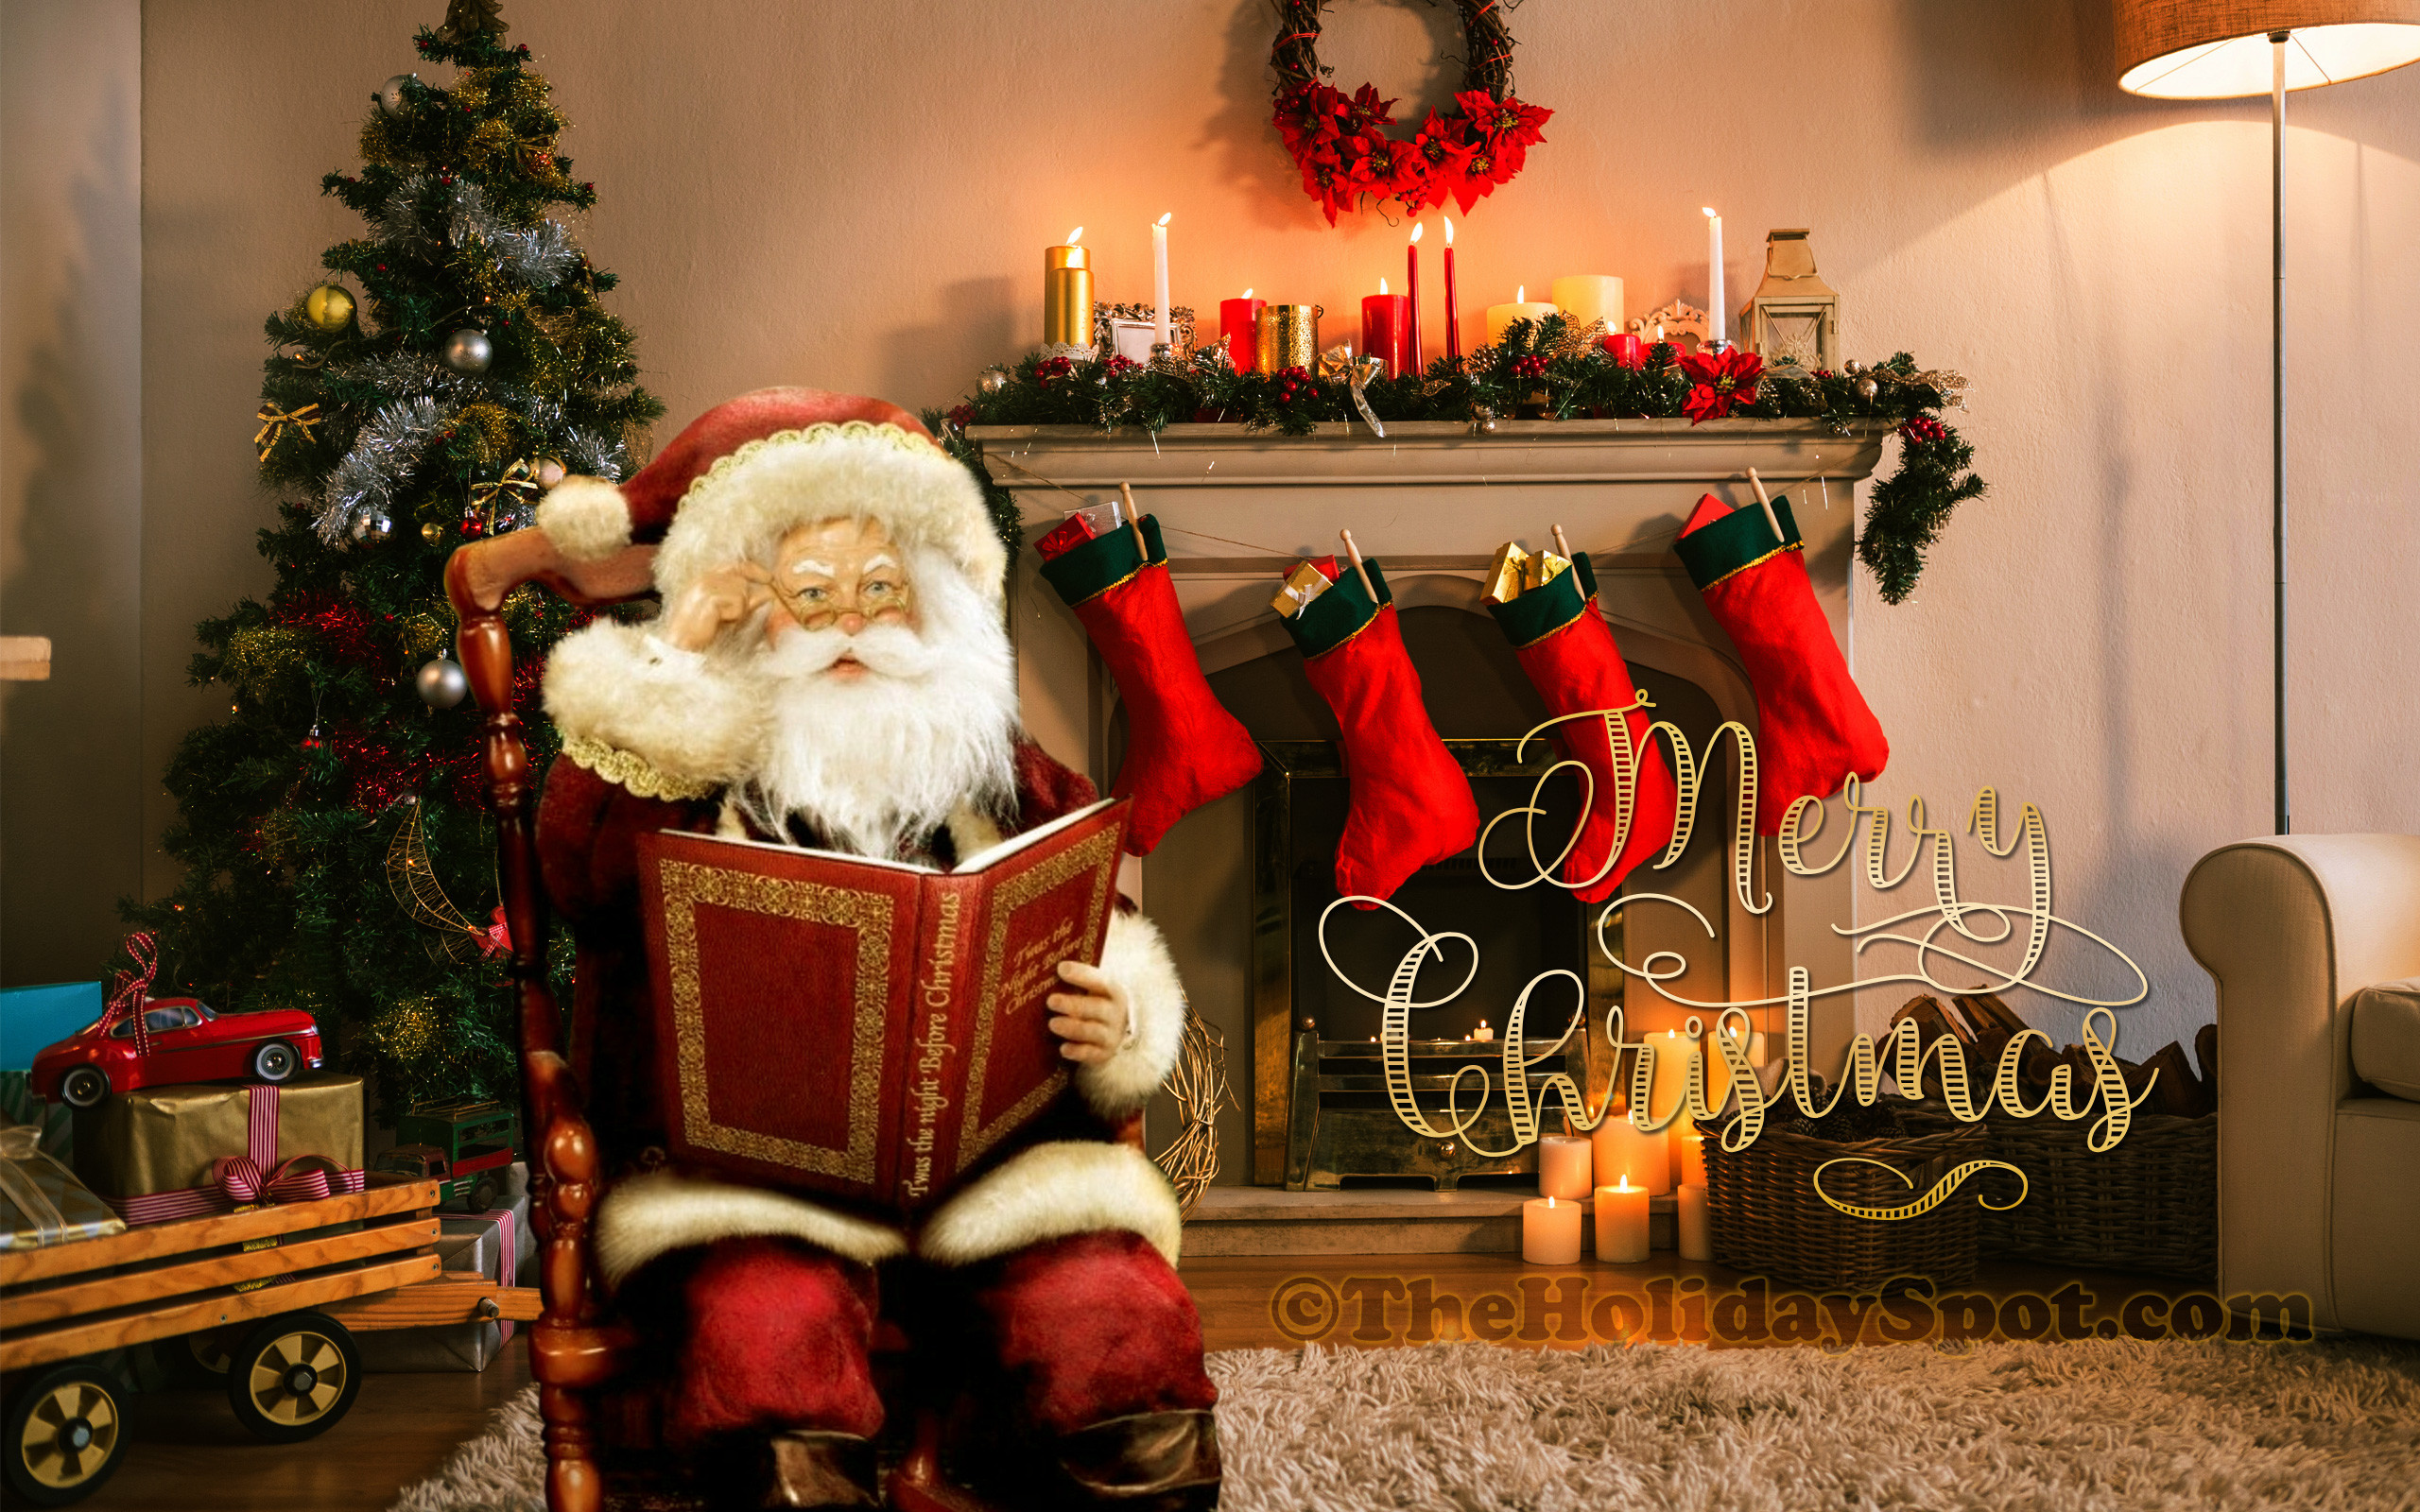 Merry Christmas Images Download.Merry Christmas 2018 Wallpaper 69 Images